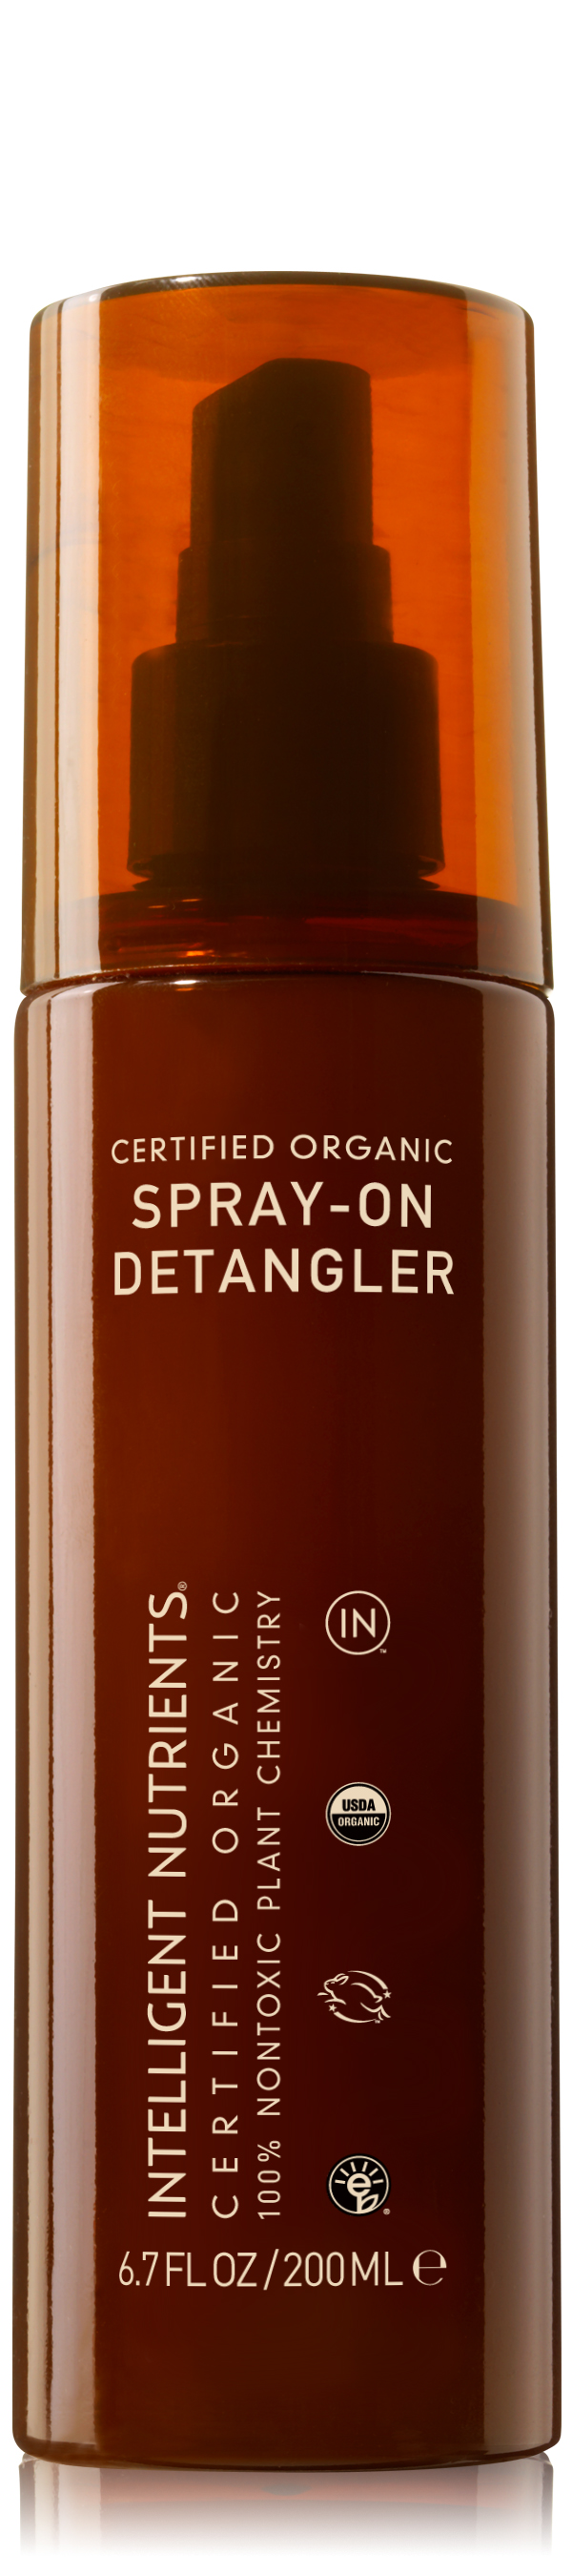 Spray-on Detangler (DKK320/200ml)